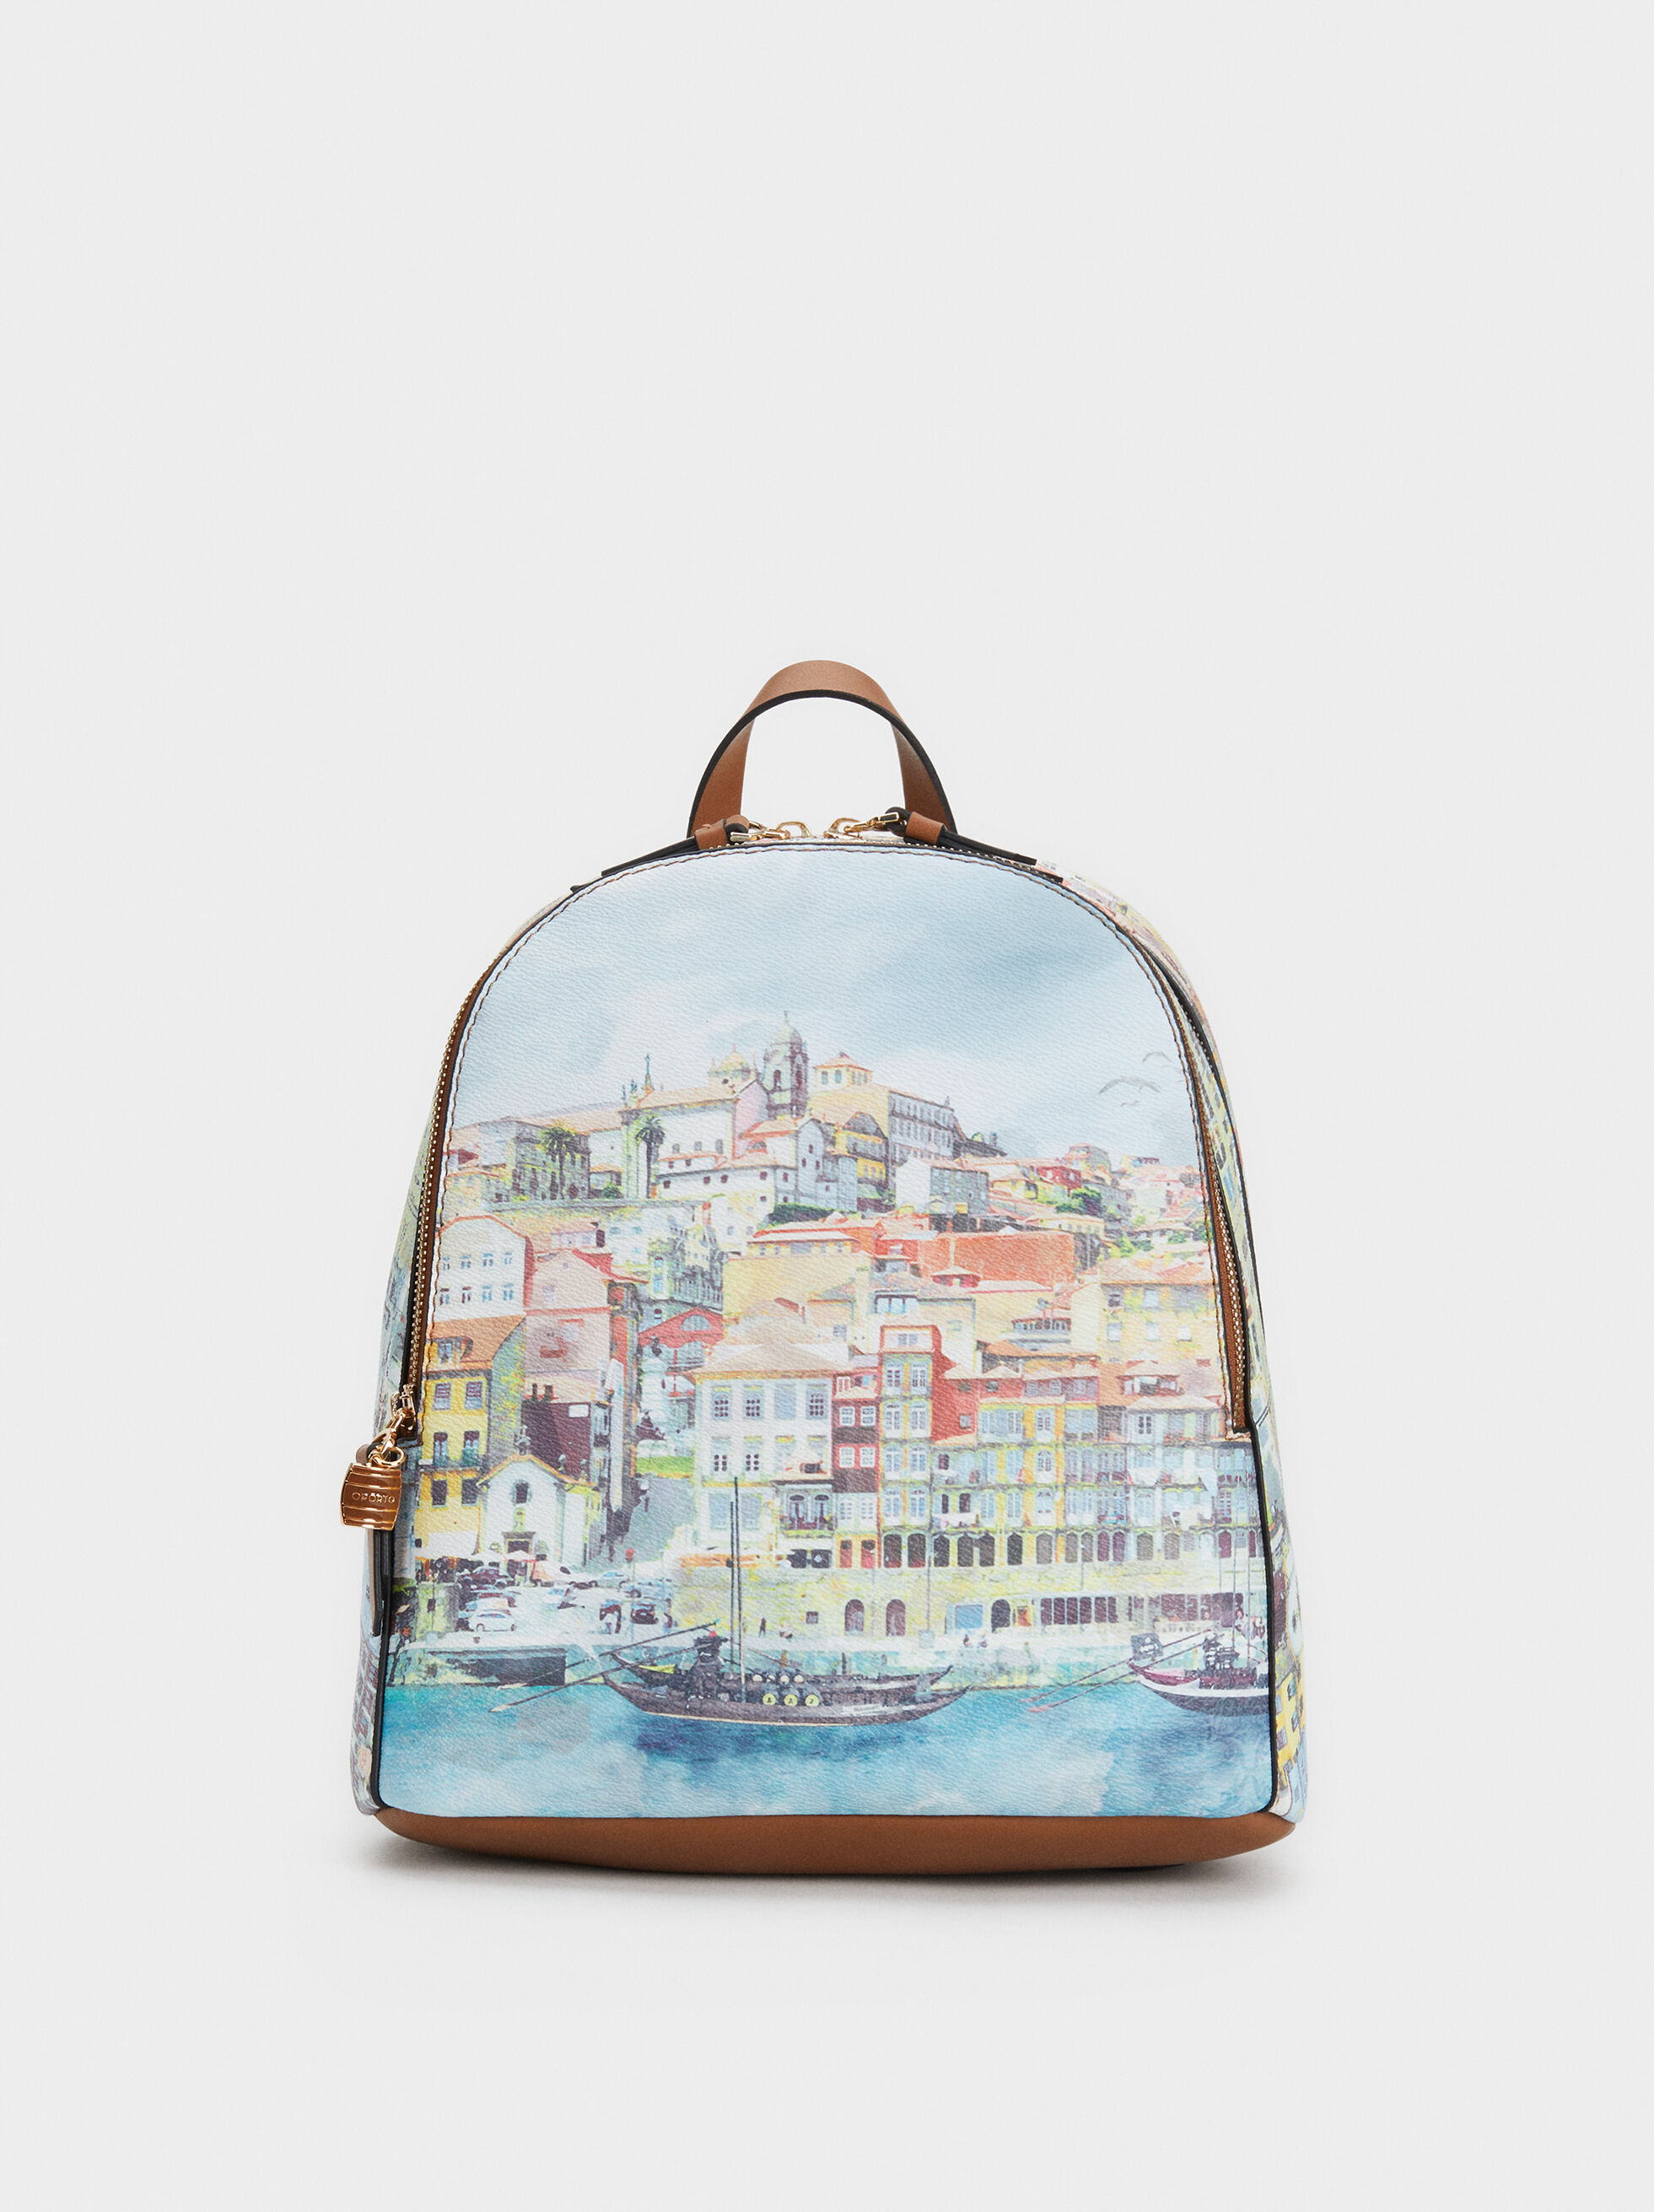 Porto Print Backpack, Blue, hi-res